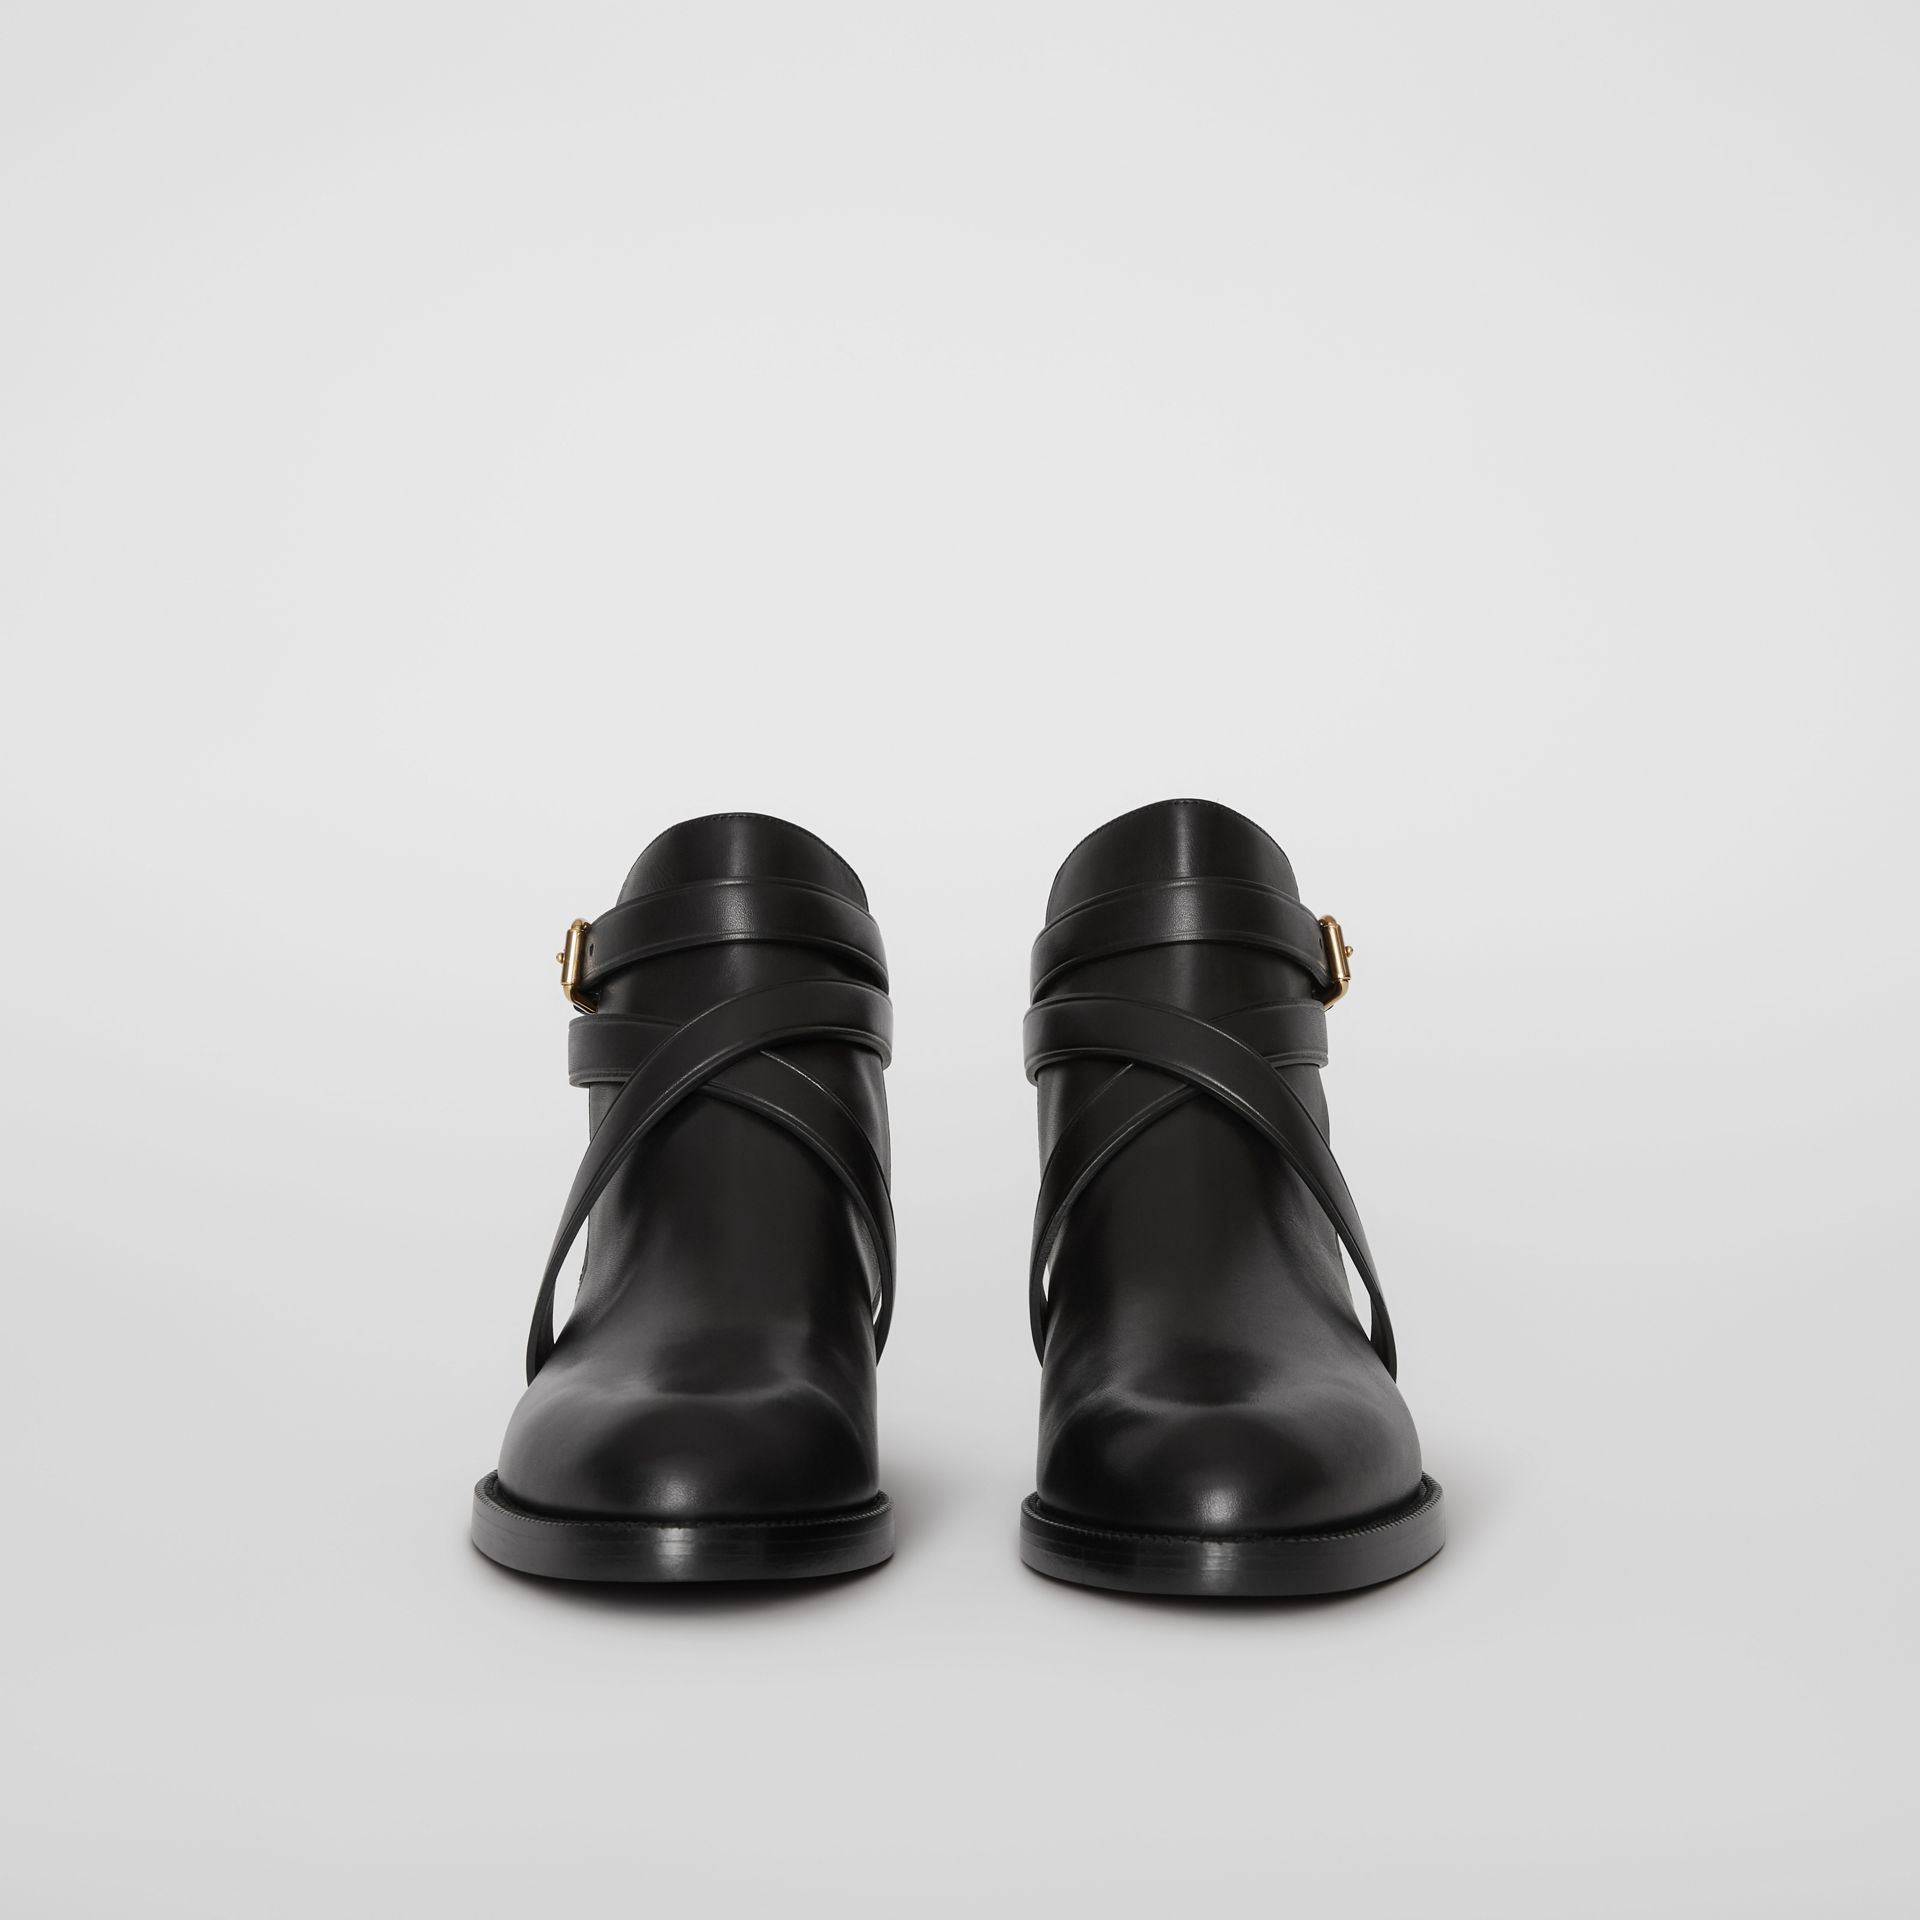 House Check and Leather Ankle Boots in Black - Women | Burberry United States - gallery image 3